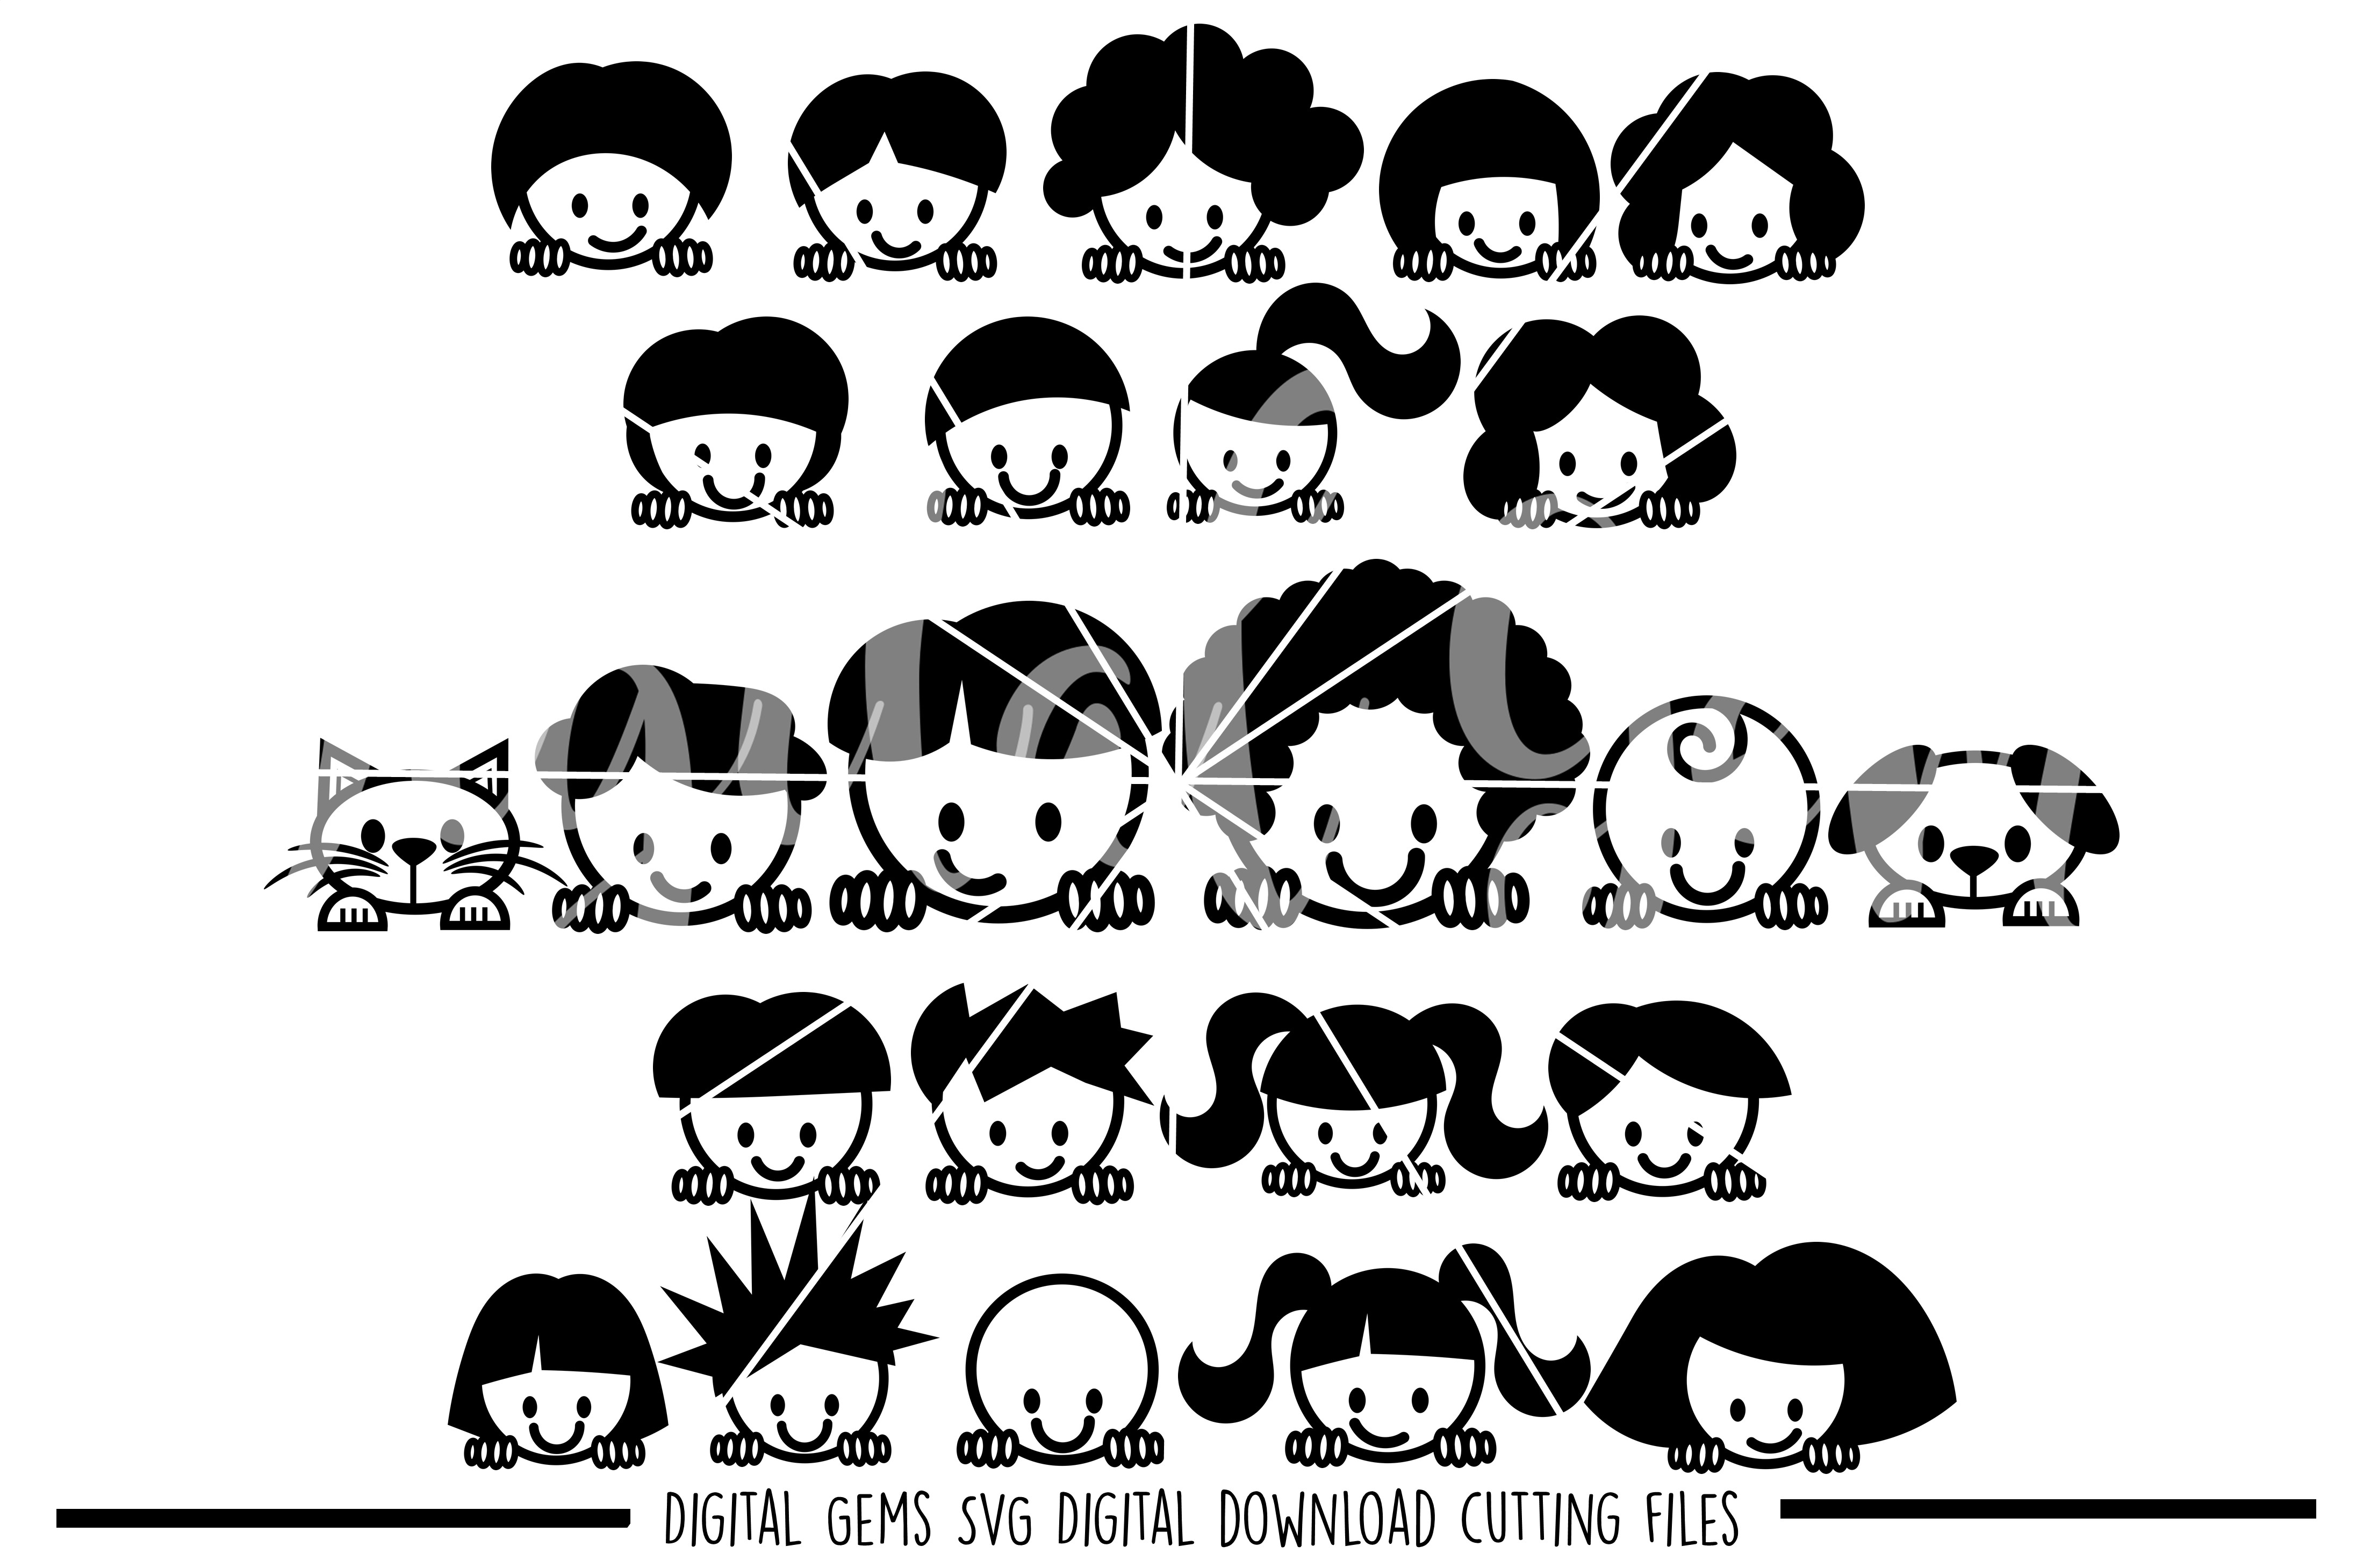 Peek a boo People SVG / DXF / EPS / PNG Files example image 1